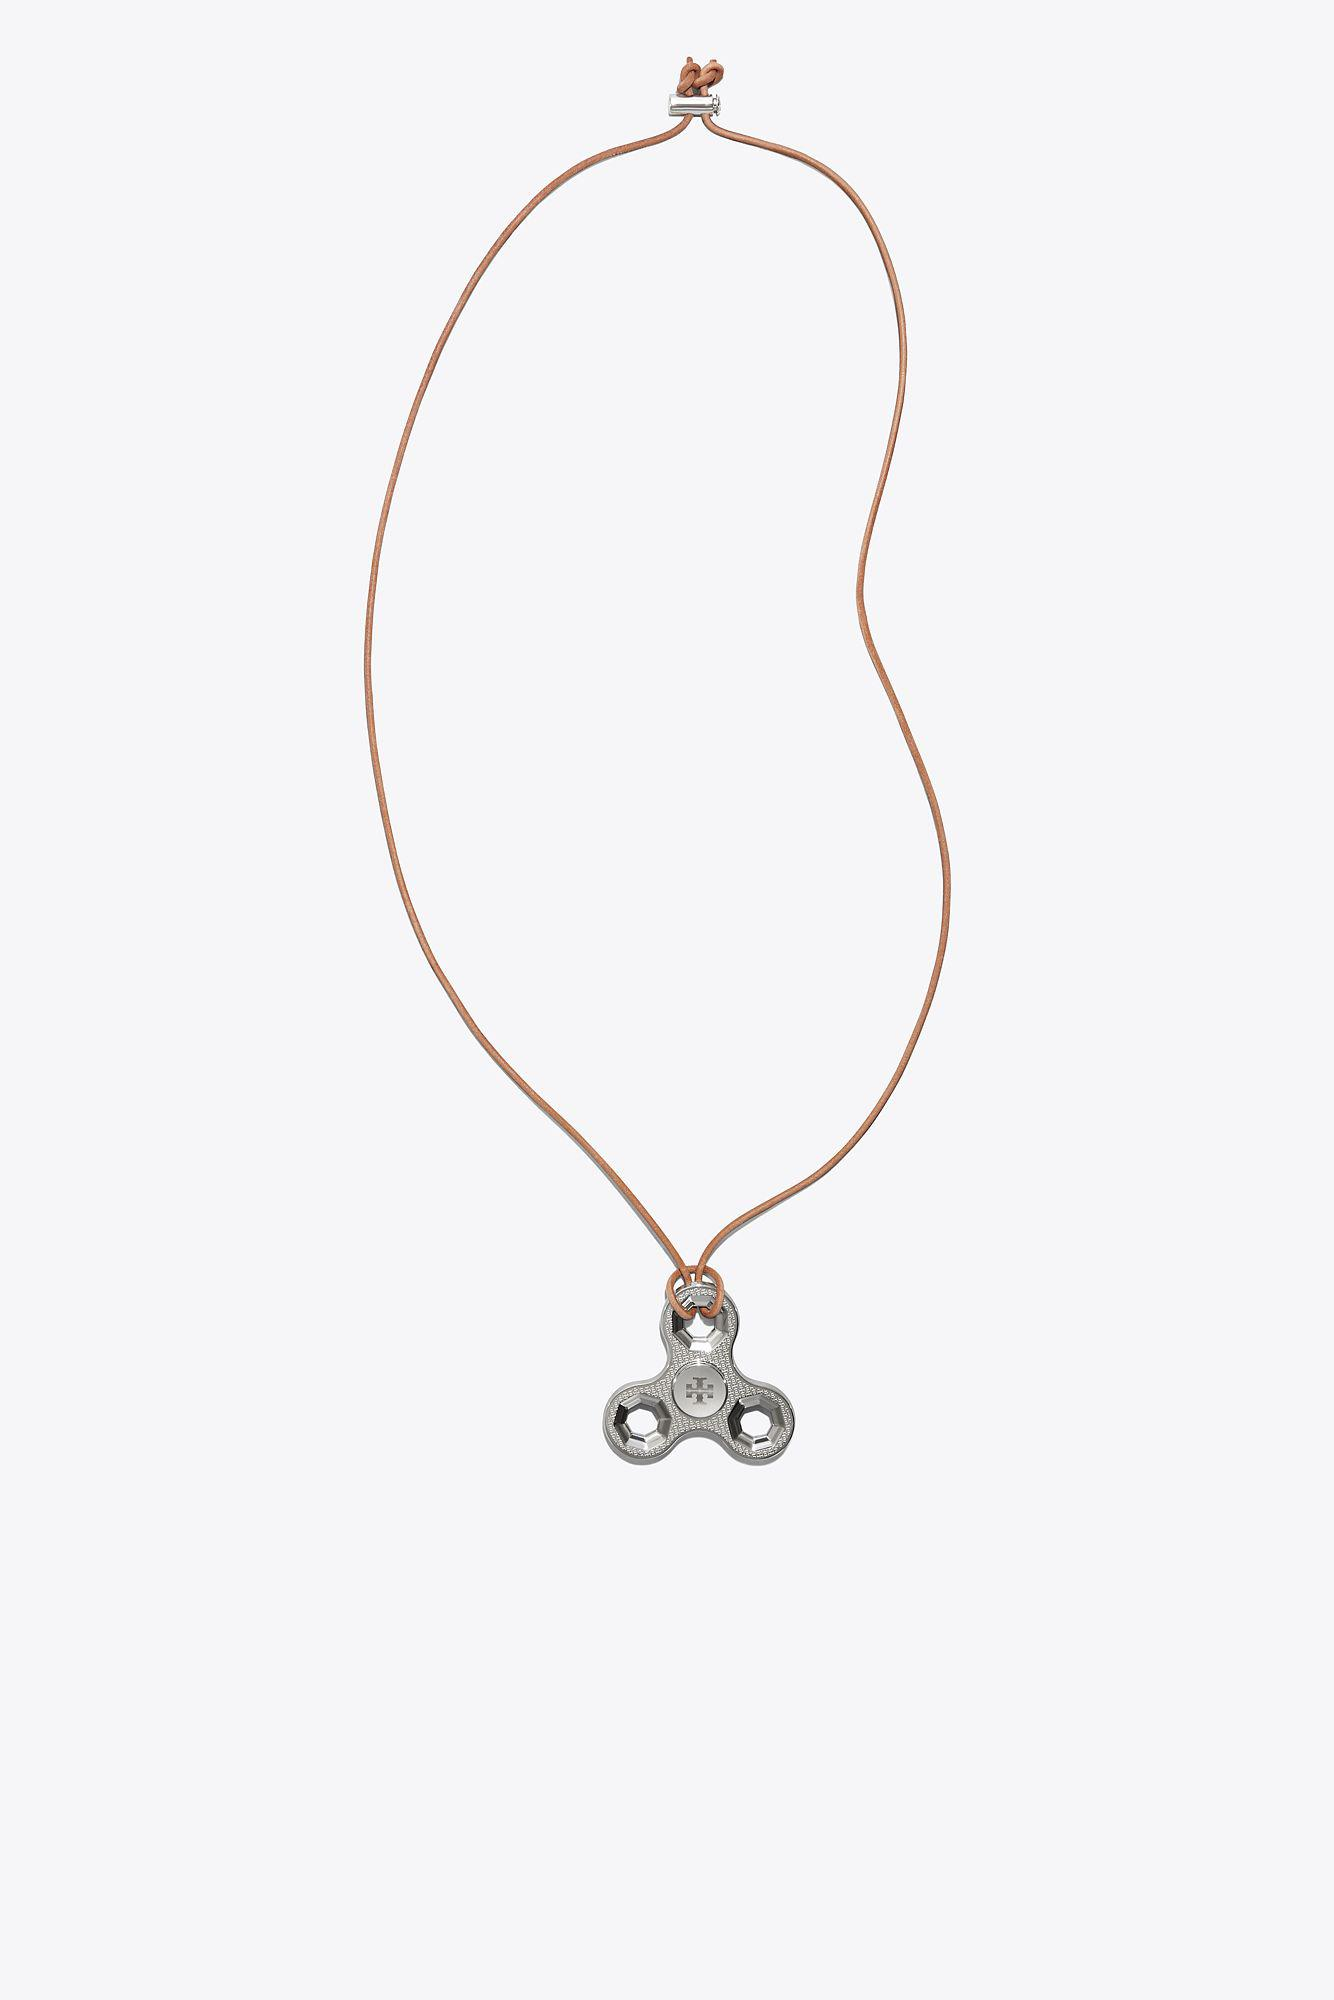 Geo Multi Necklace in Tory Silver Brass and Leather Tory Burch n8JbjLc3